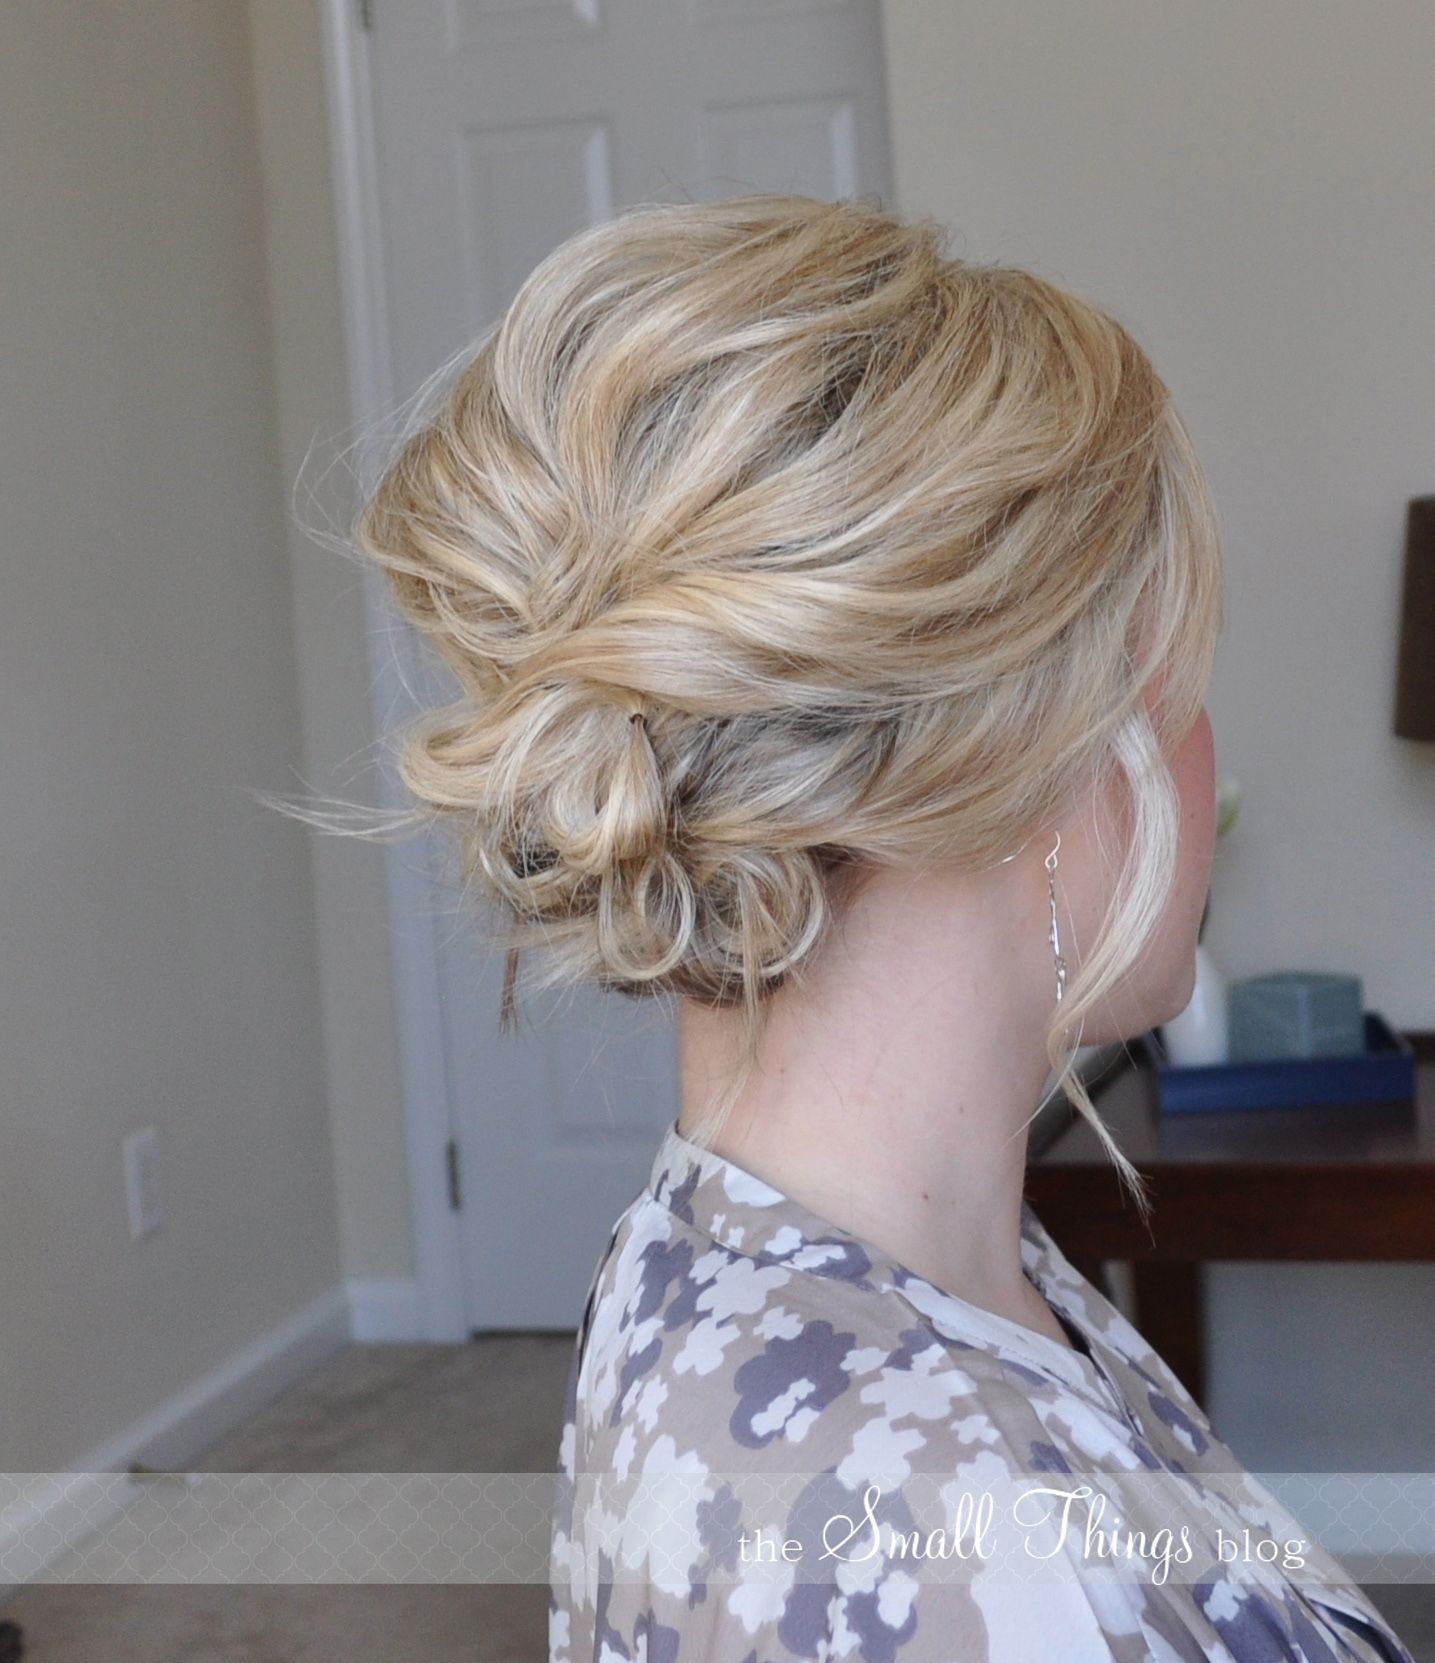 Quick short hair updos hairstyles idea my style pinterest